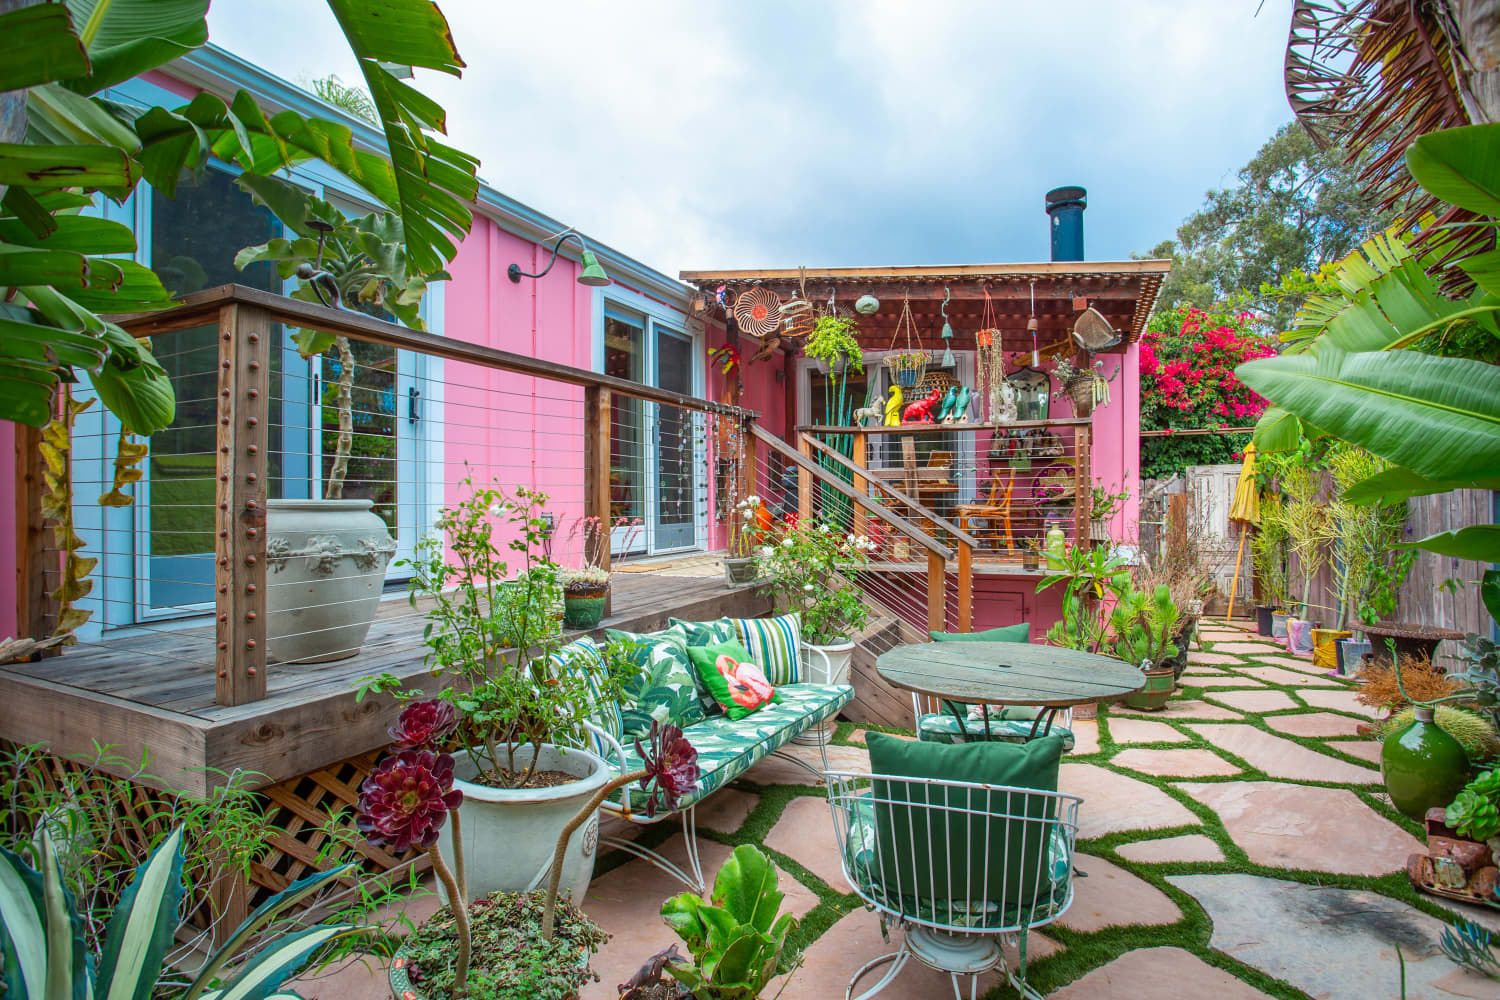 Betsey johnsons malibu mobile home is just as wild and